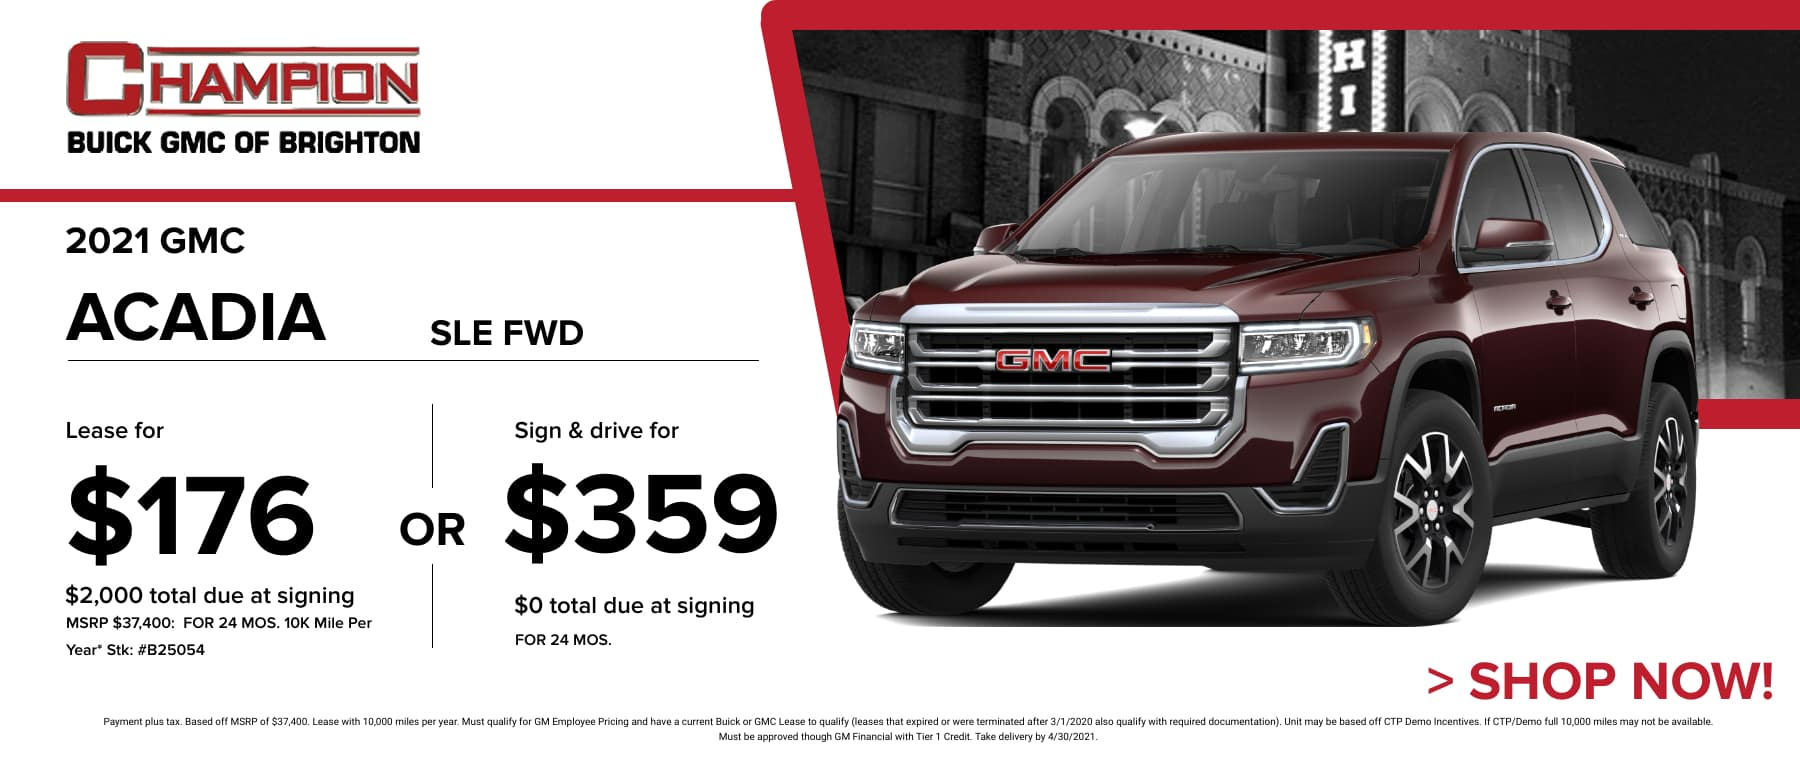 Sign & Drive for $359 per month for 24 months. *Stock #B25054. MSRP: $37,400 Payment plus tax. Based off MSRP of $37,400. Lease with 10,000 miles per year. Must qualify for GM Employee Pricing and have a current Buick or GMC Lease to qualify (leases that expired or were terminated after 3/1/2020 also qualify with required documentation). Unit may be based off CTP Demo Incentives. If CTP/Demo full 10,000 miles may not be available. Must be approved though GM Financial with Tier 1 Credit. Take delivery by 4/30/2021.